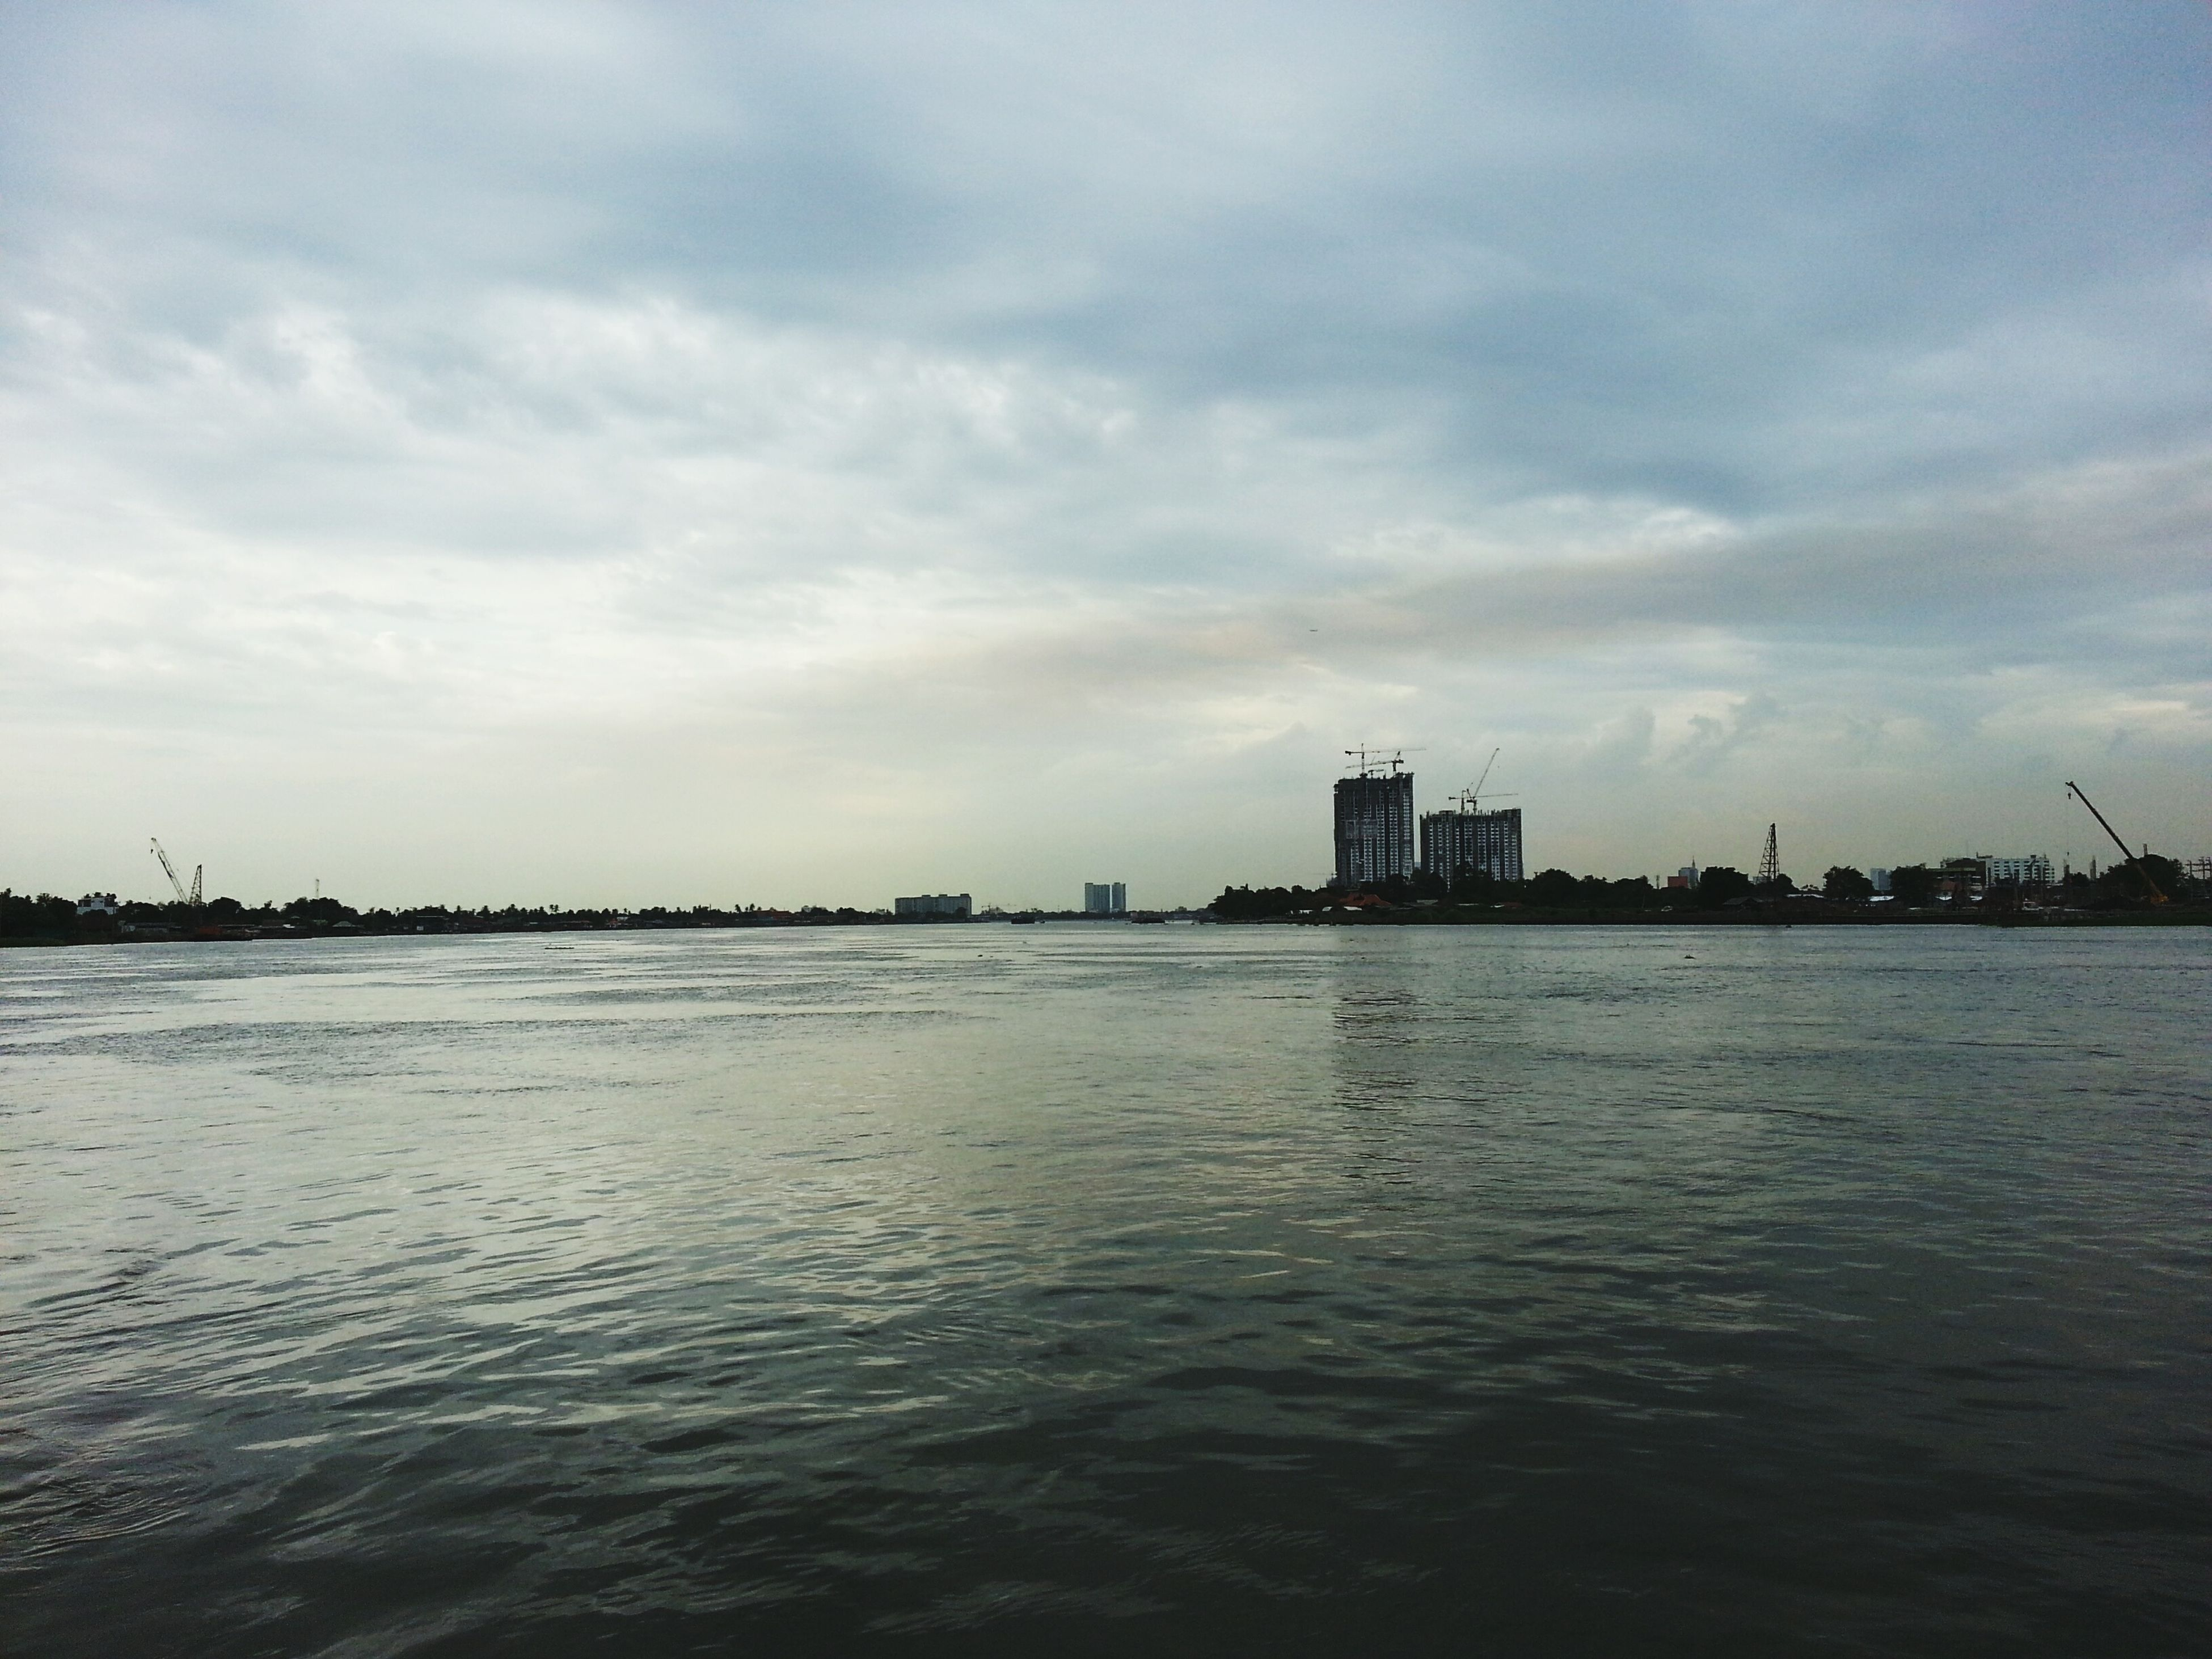 water, waterfront, building exterior, sky, architecture, built structure, sea, cloud - sky, city, cloudy, rippled, cloud, scenics, nature, tranquil scene, tranquility, river, beauty in nature, dusk, cityscape